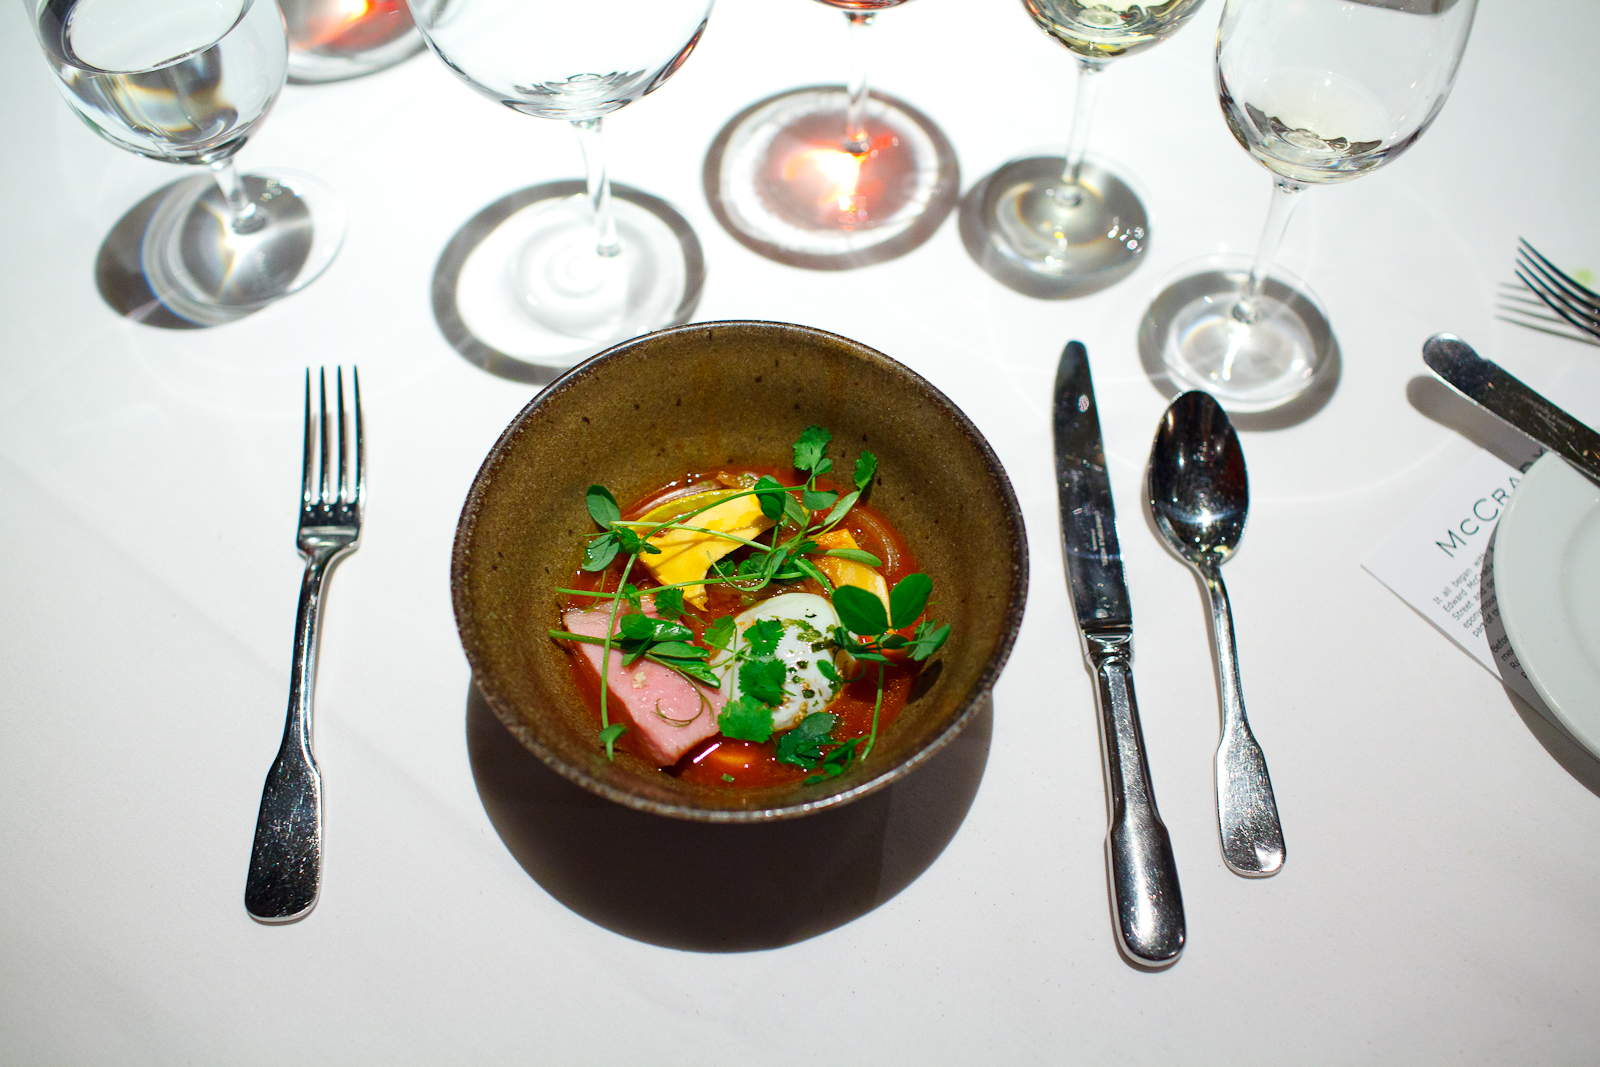 5th Course: Broth of fermented red peppers, pork skin noodles, egg poached in pork fat, roasted pork, matsutake mushroom, and English peas